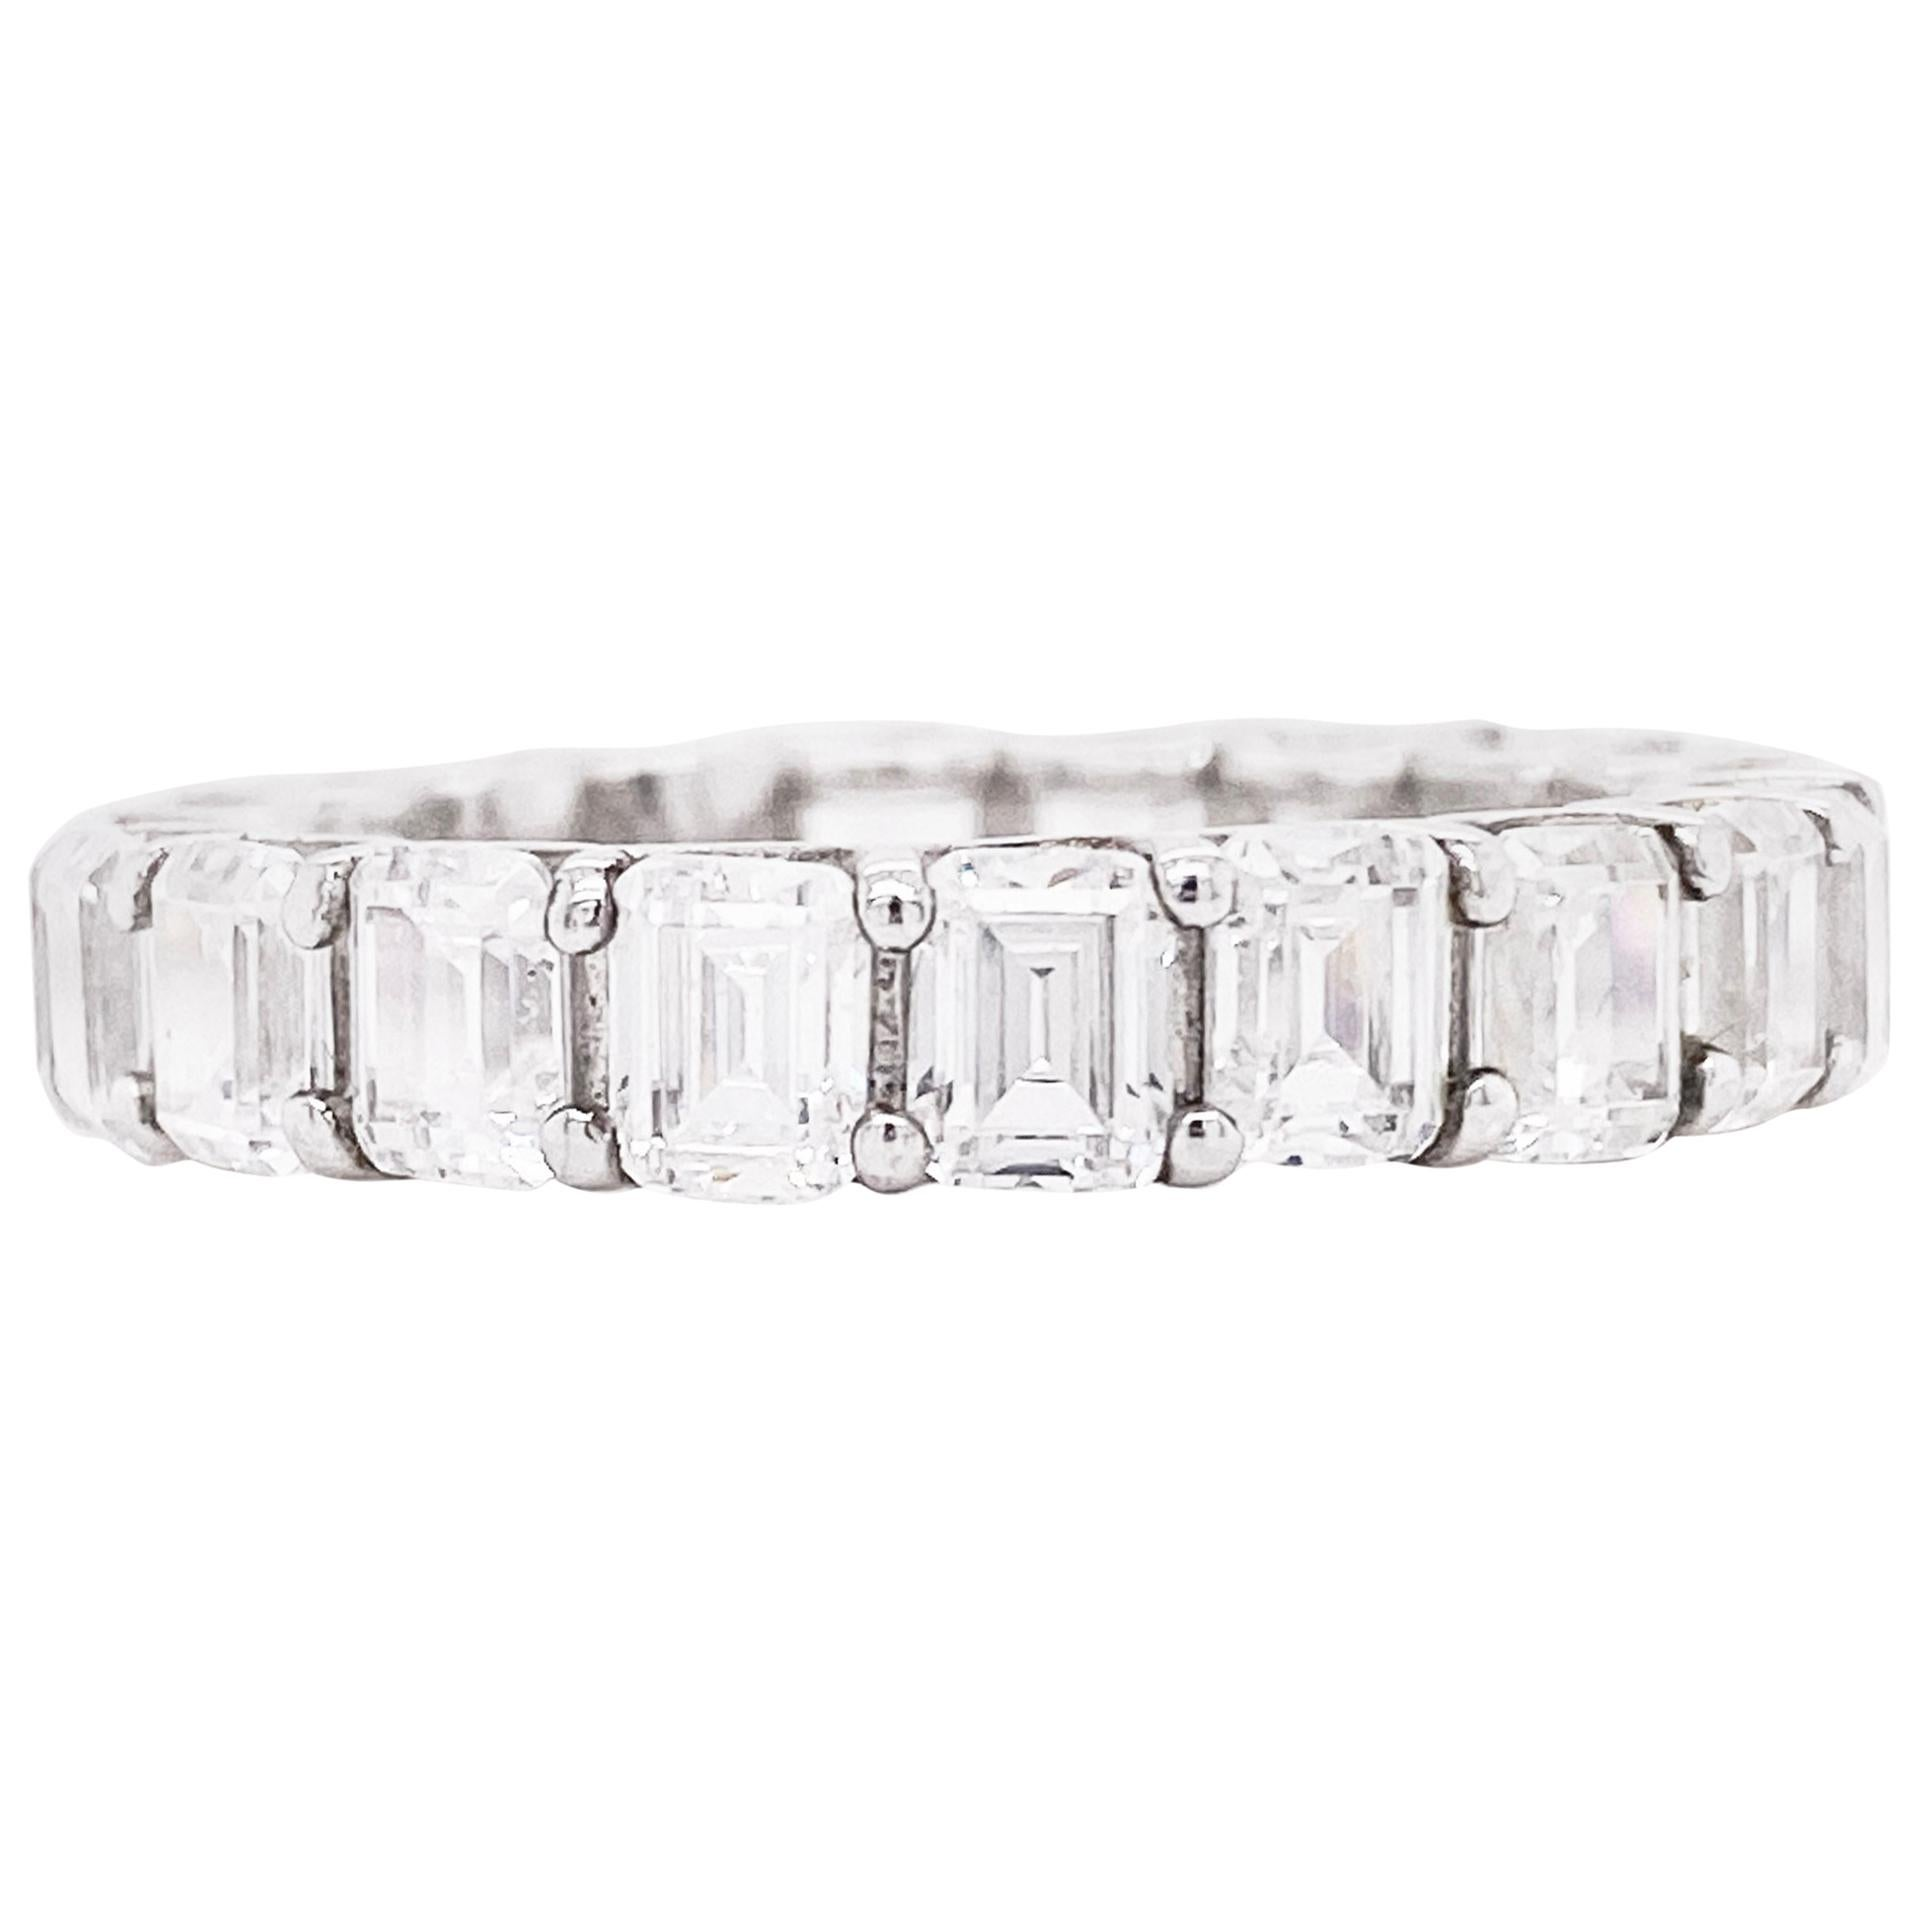 Diamond Eternity Emerald Cut Band, Eternity Diamond Band, Infinite Wedding Band